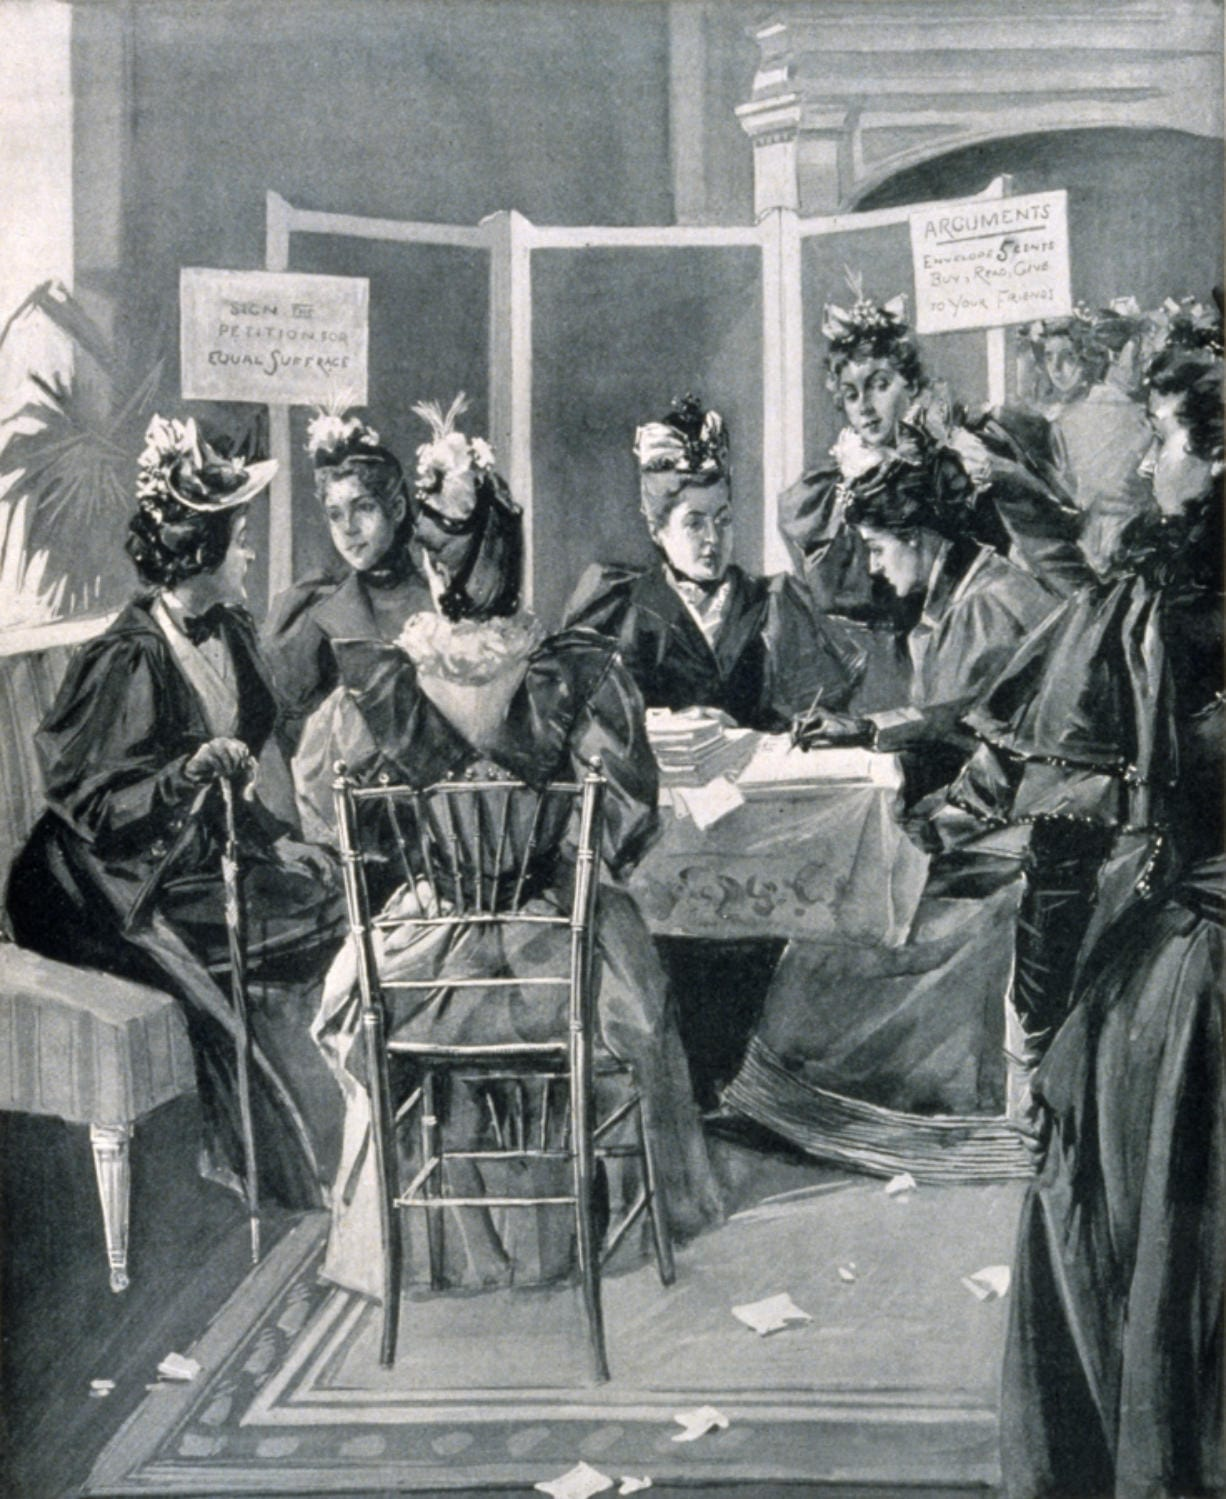 Vintage illustration shows leaders in the women's suffrage movement in New York City securing signatures for petitions to be presented to the constitutional convention.